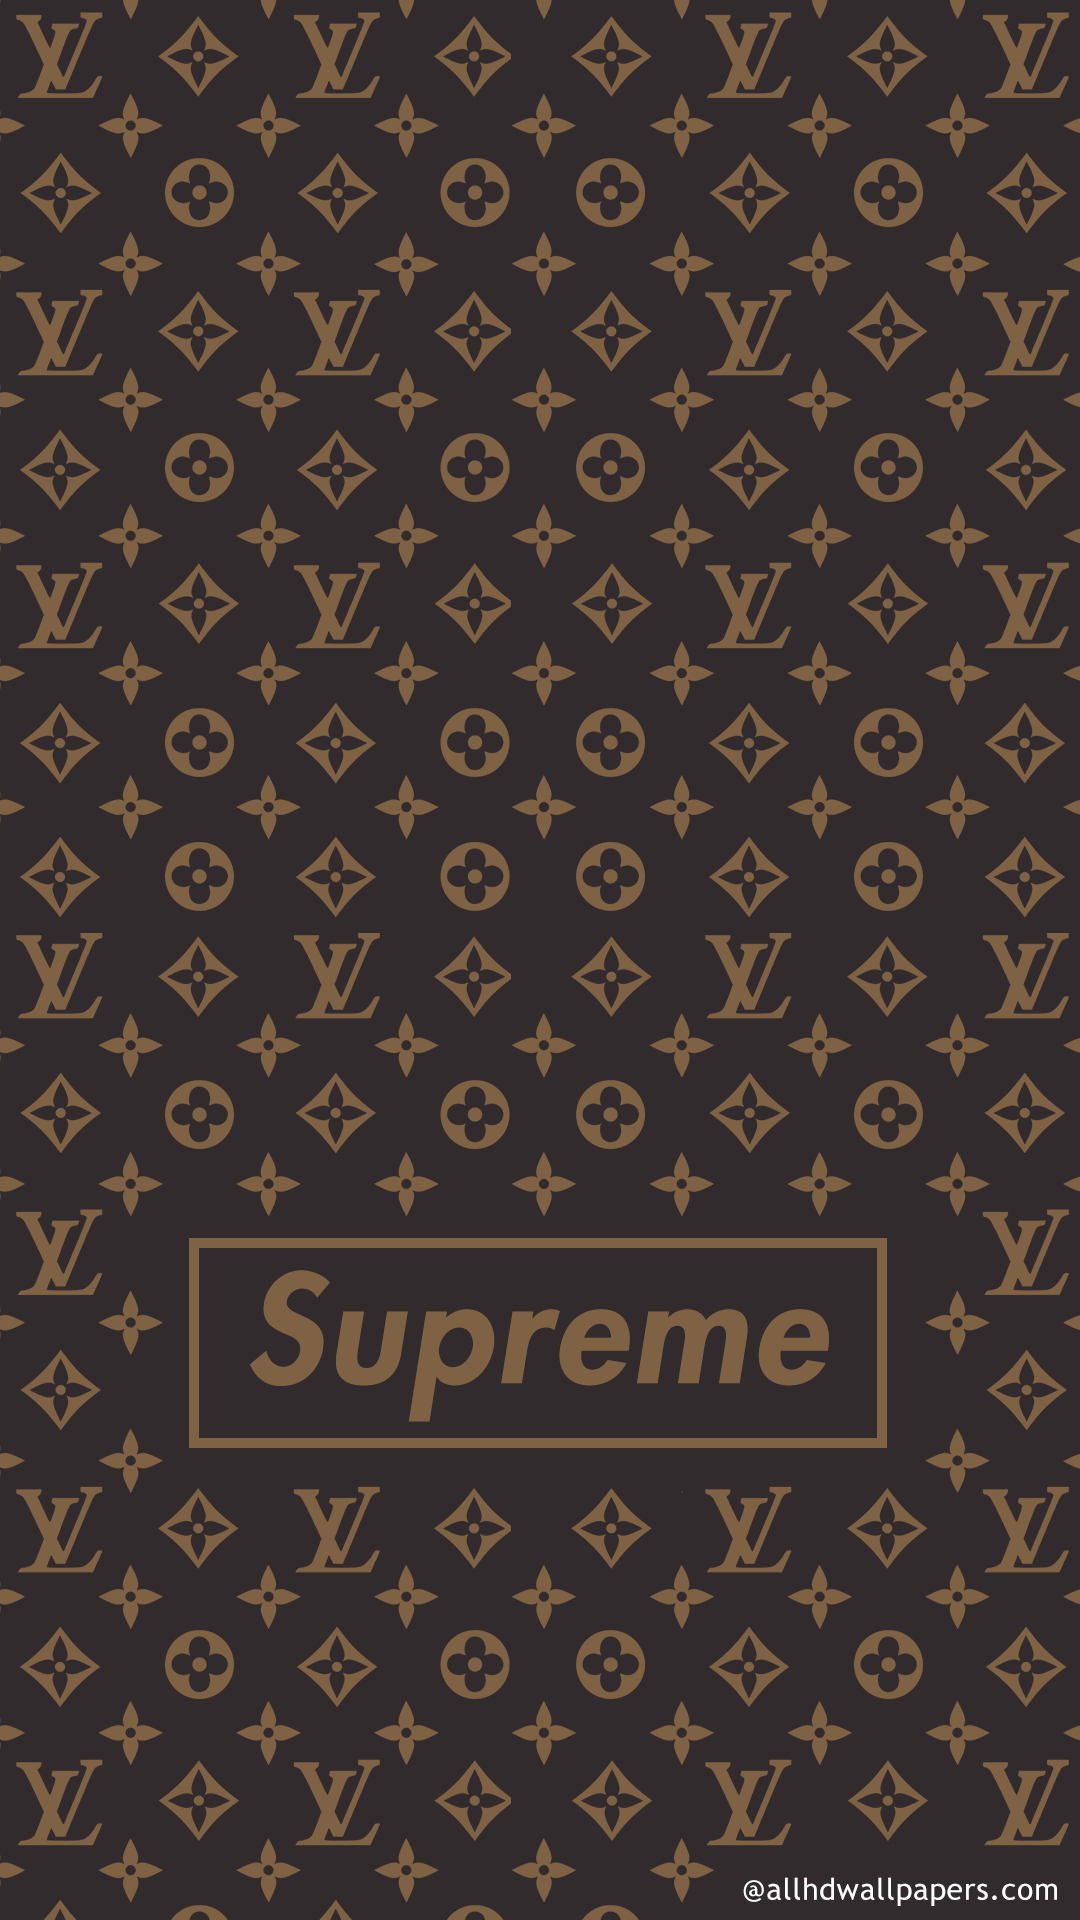 70+ Supreme Wallpapers In 4K